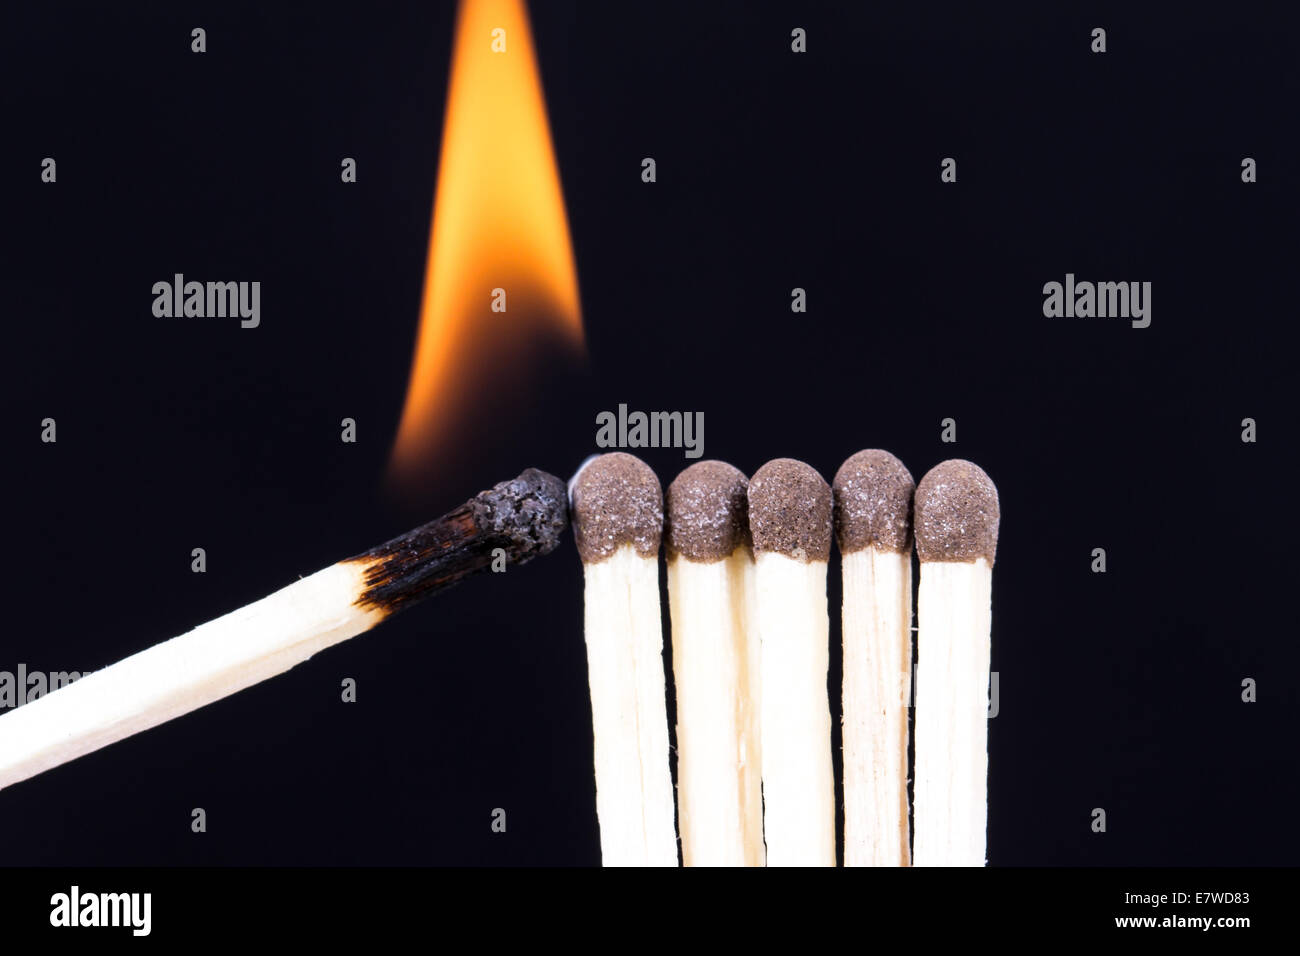 Ideas and inspiration concept, burning match with flame setting fire to others on dark background. - Stock Image